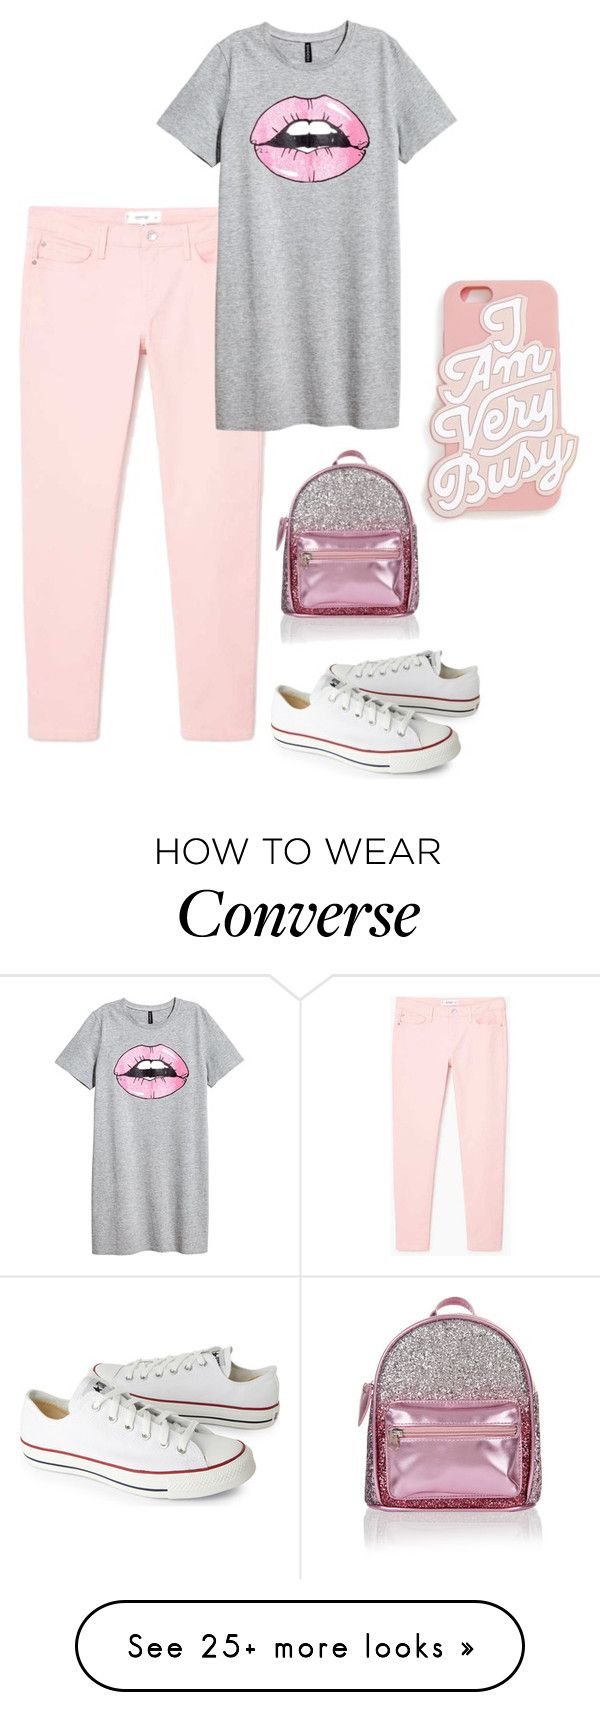 """""""i am very busy"""" by rebekahp1994 on Polyvore featuring MANGO, ban.do, Converse and Accessorize"""